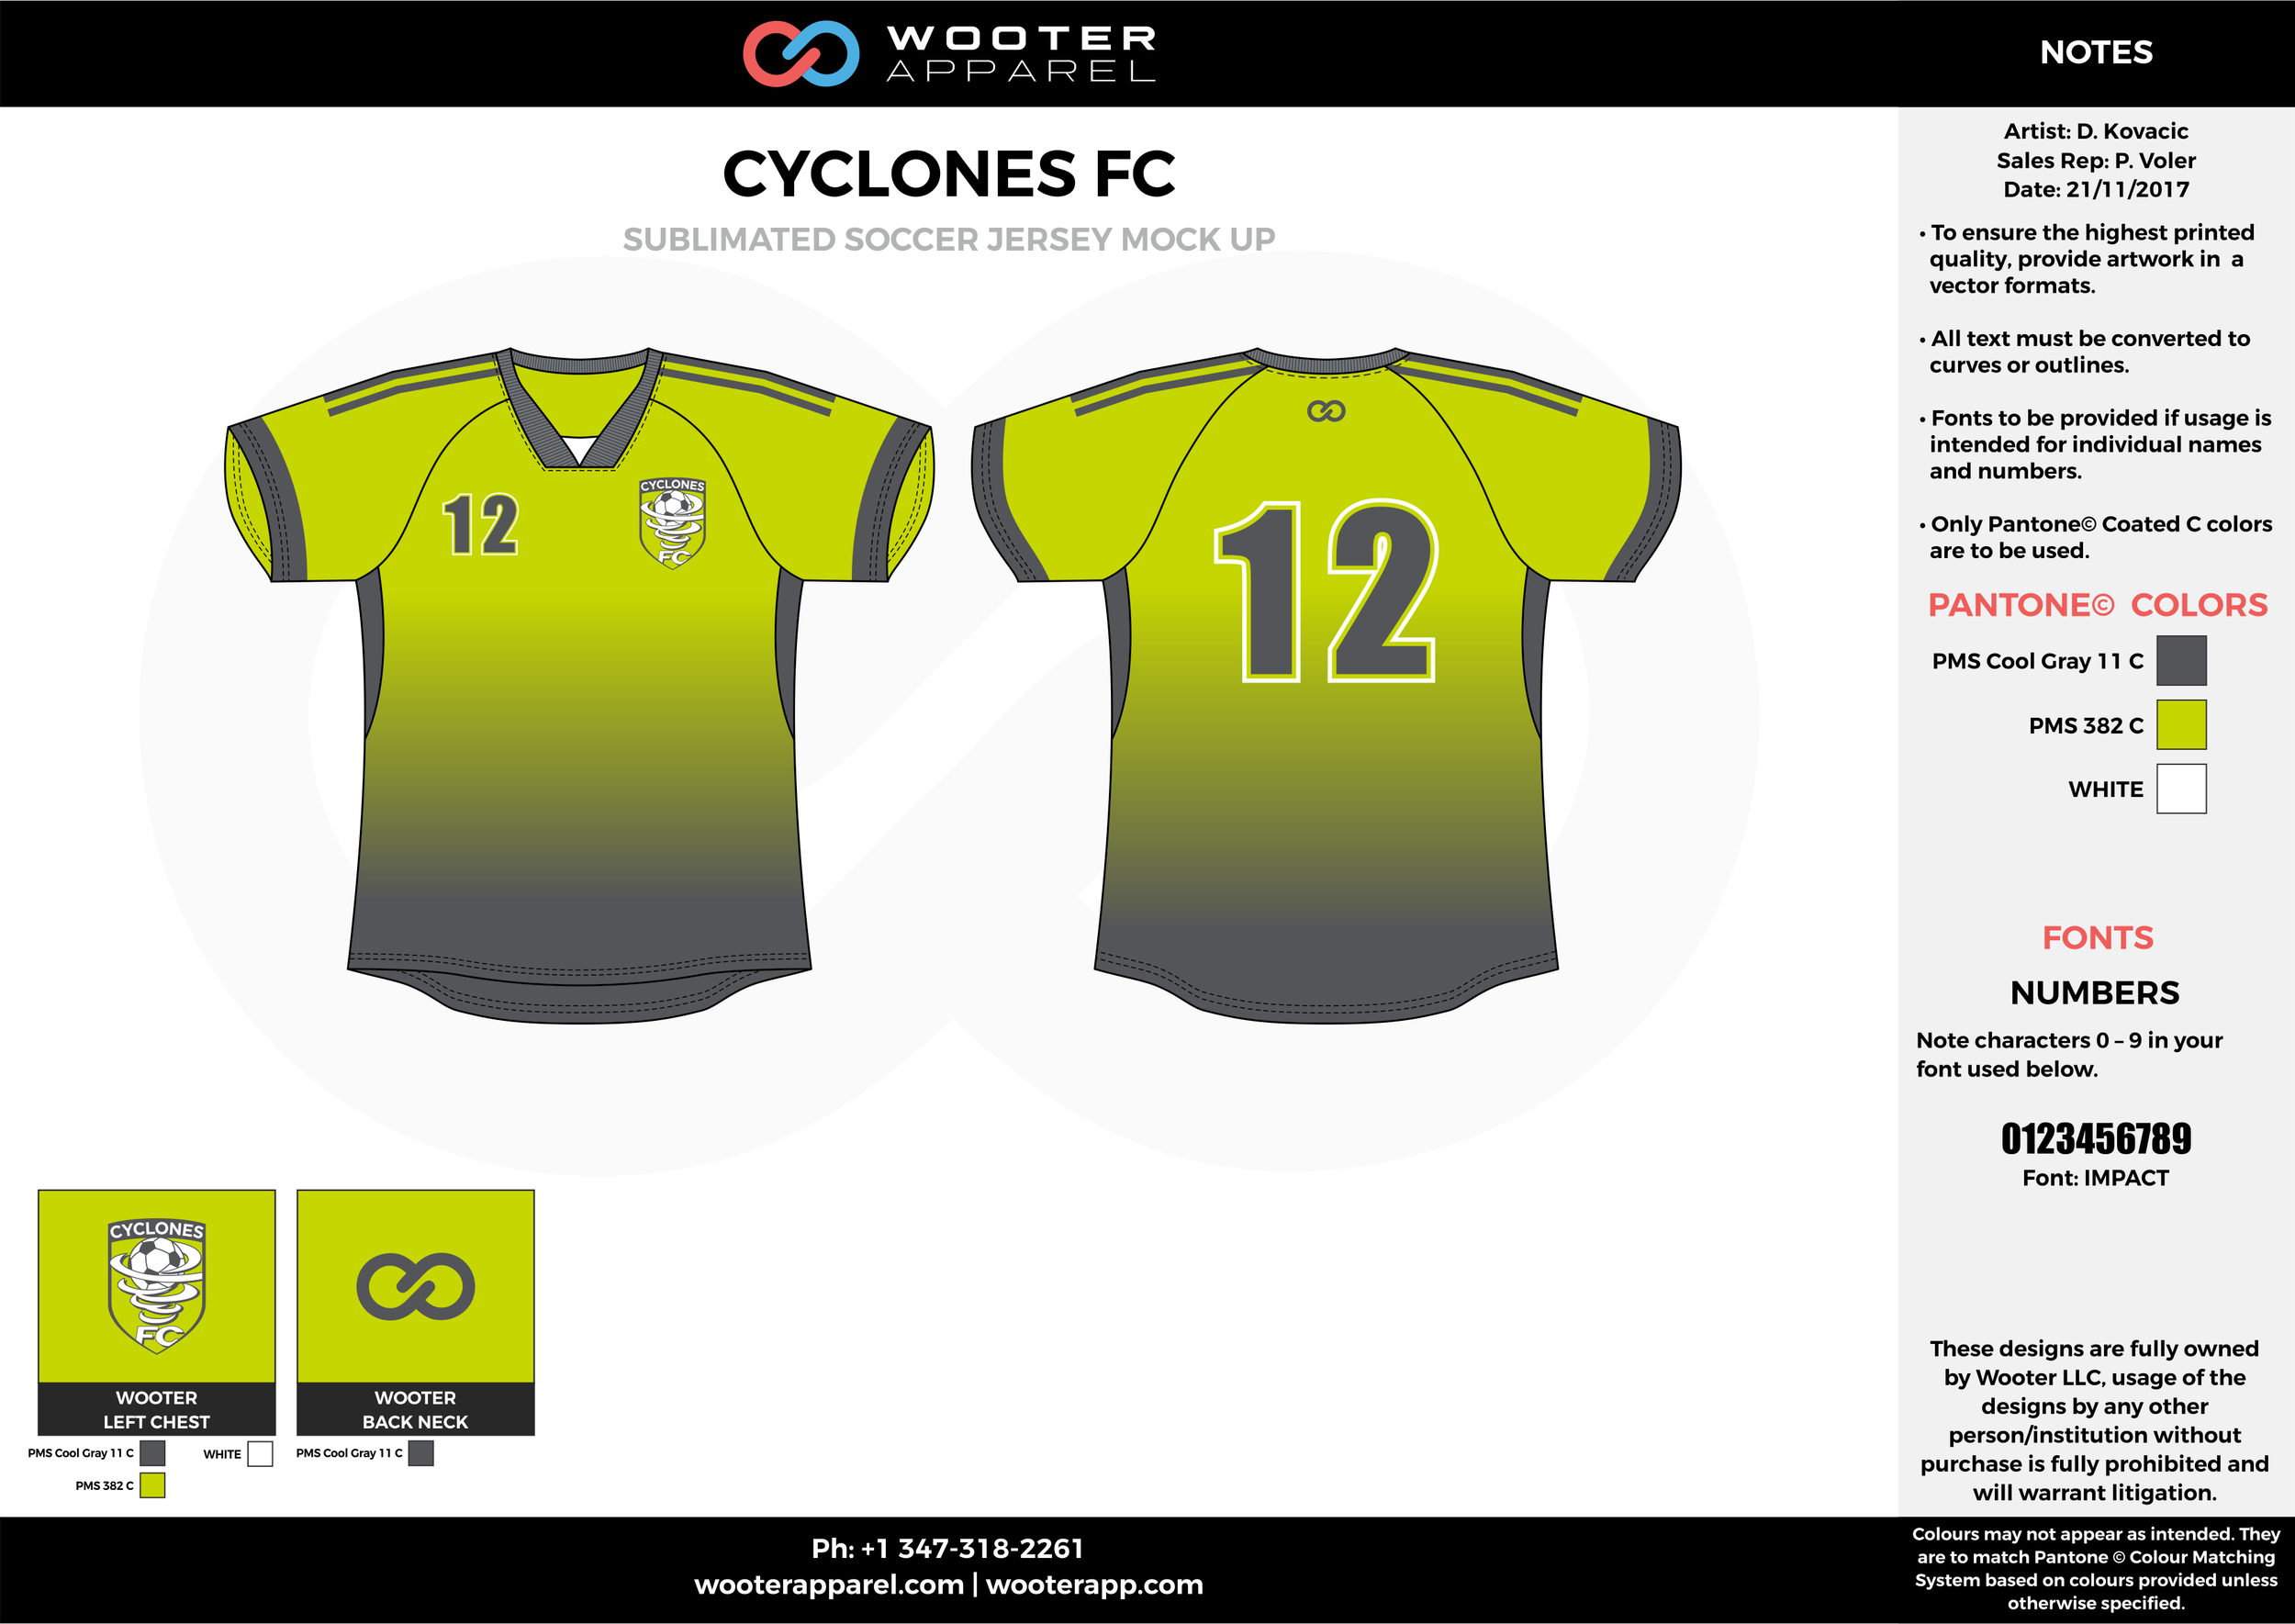 CYCLONES FC apple green gray custom sublimated soccer uniform jersey shirt